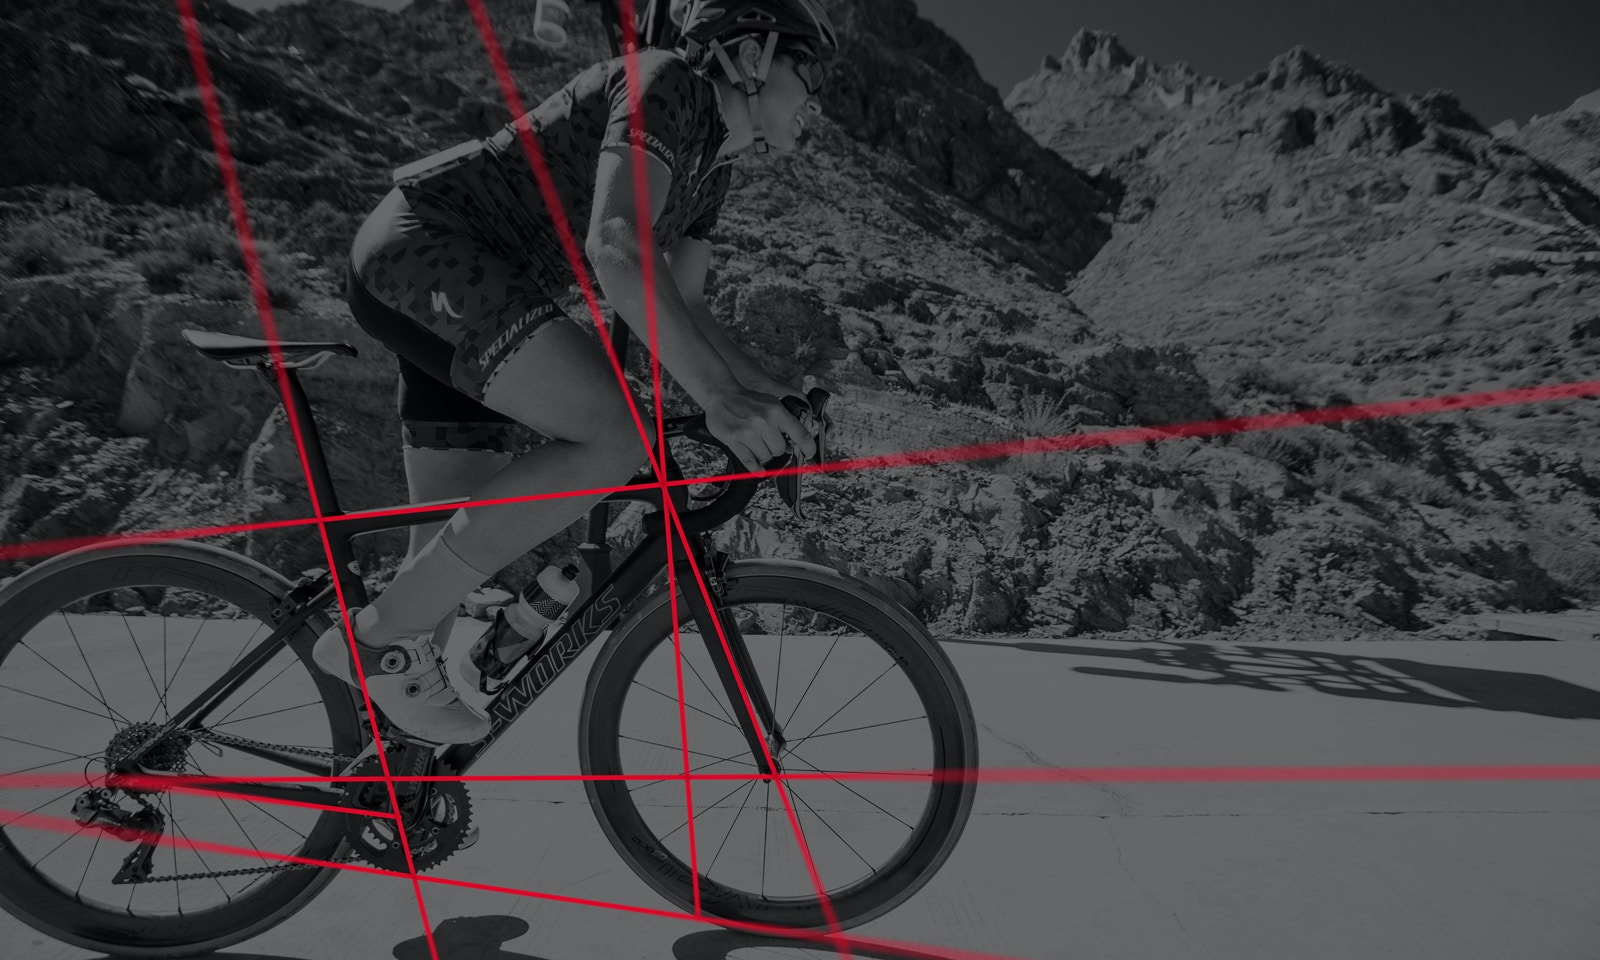 Understanding Bike Geometry Charts: What They Mean and How To Read Them